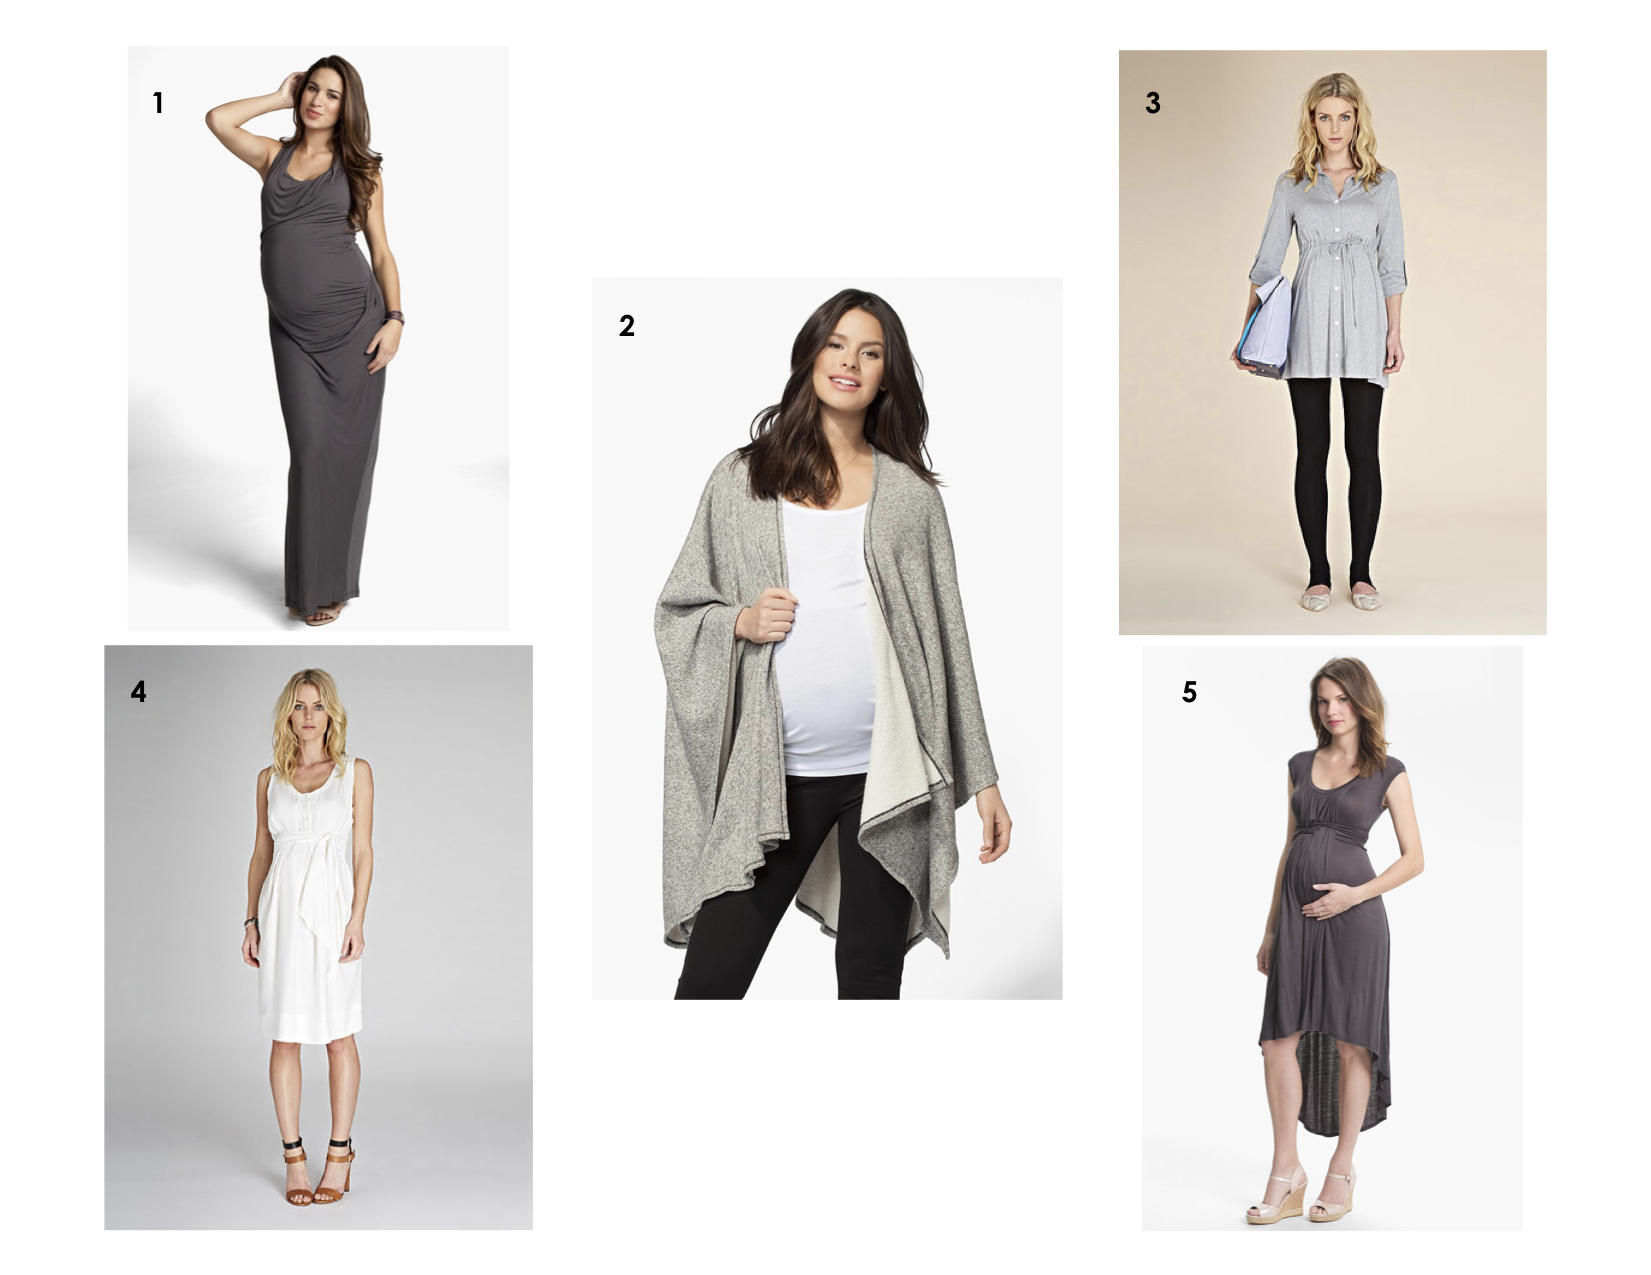 Women clothing stores Maternity cloth stores